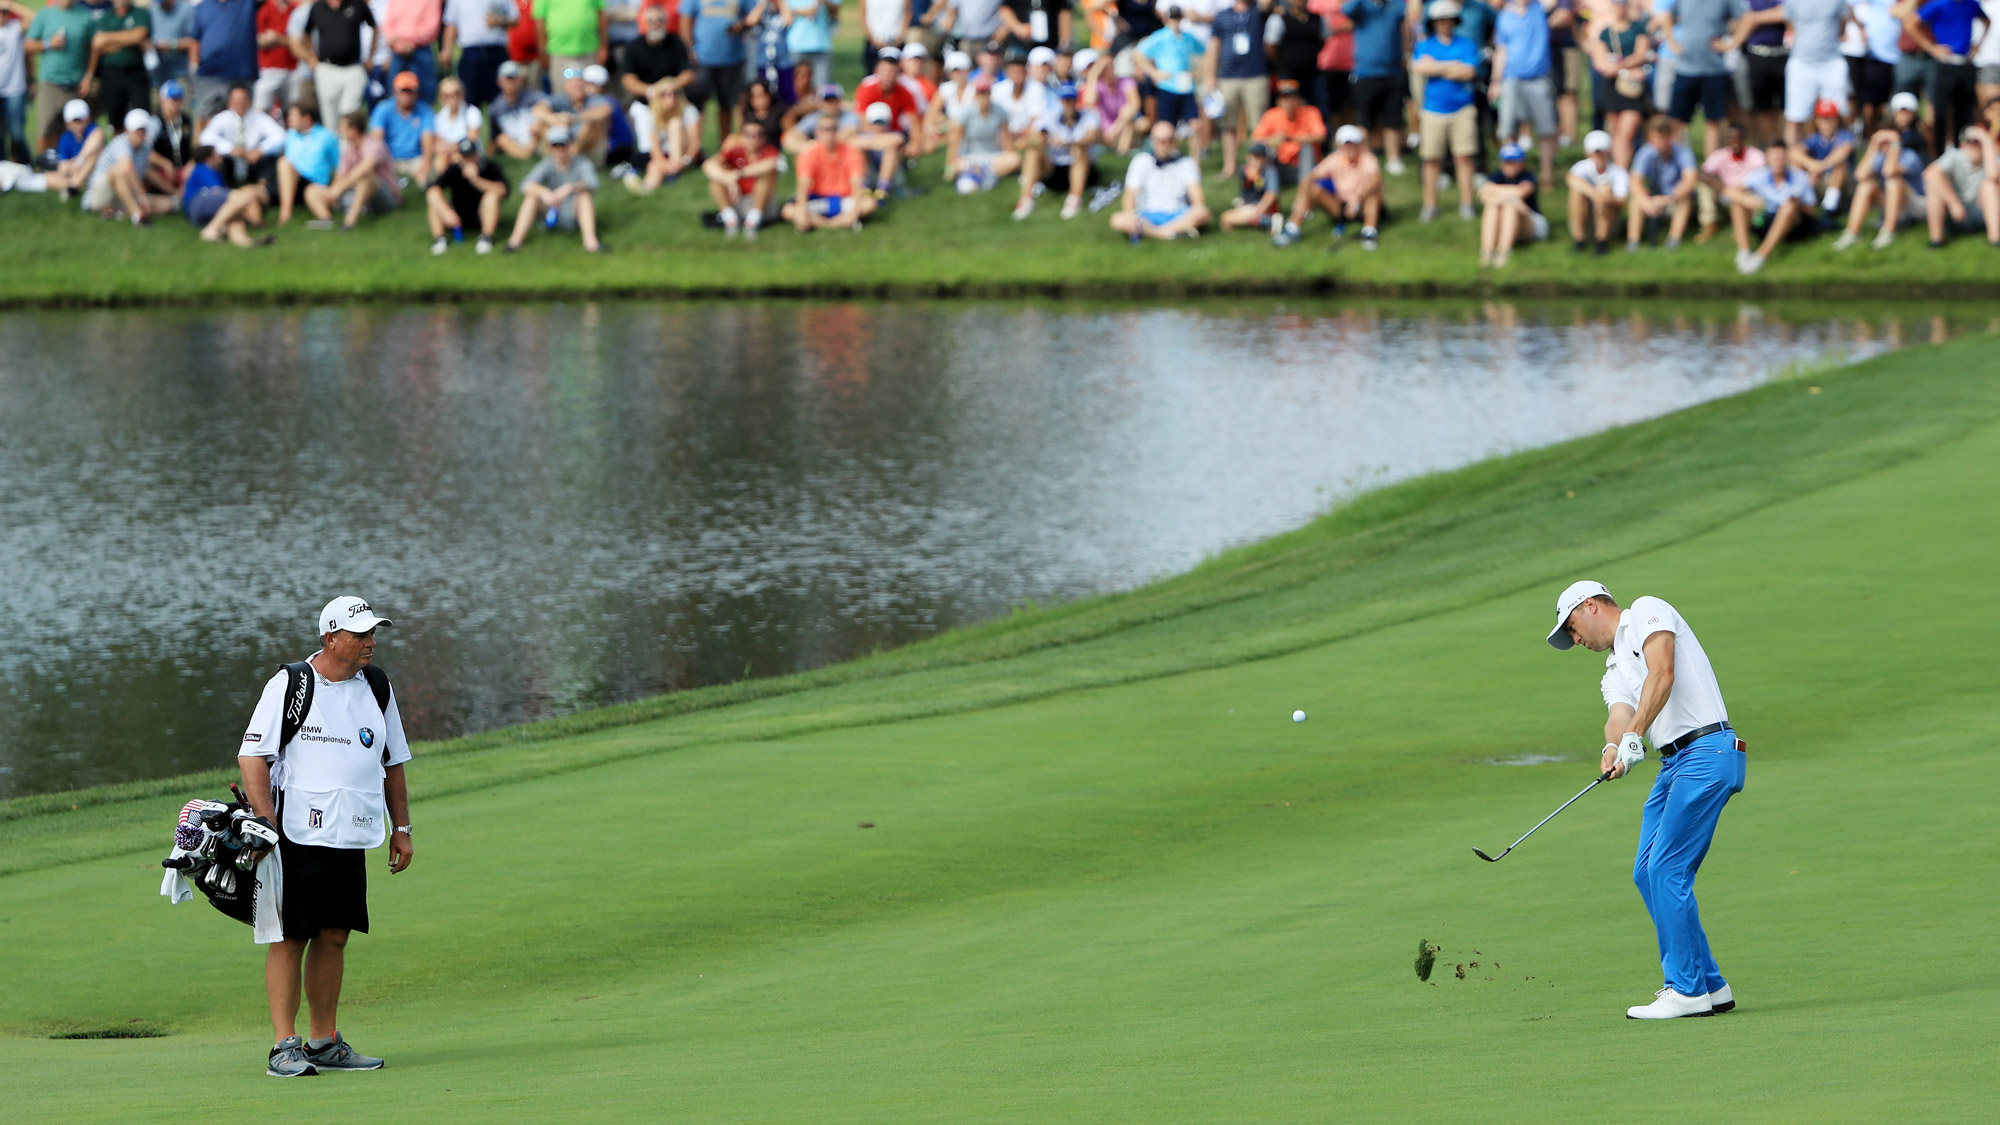 How To Watch The Tour Championship Live Stream The Fedex